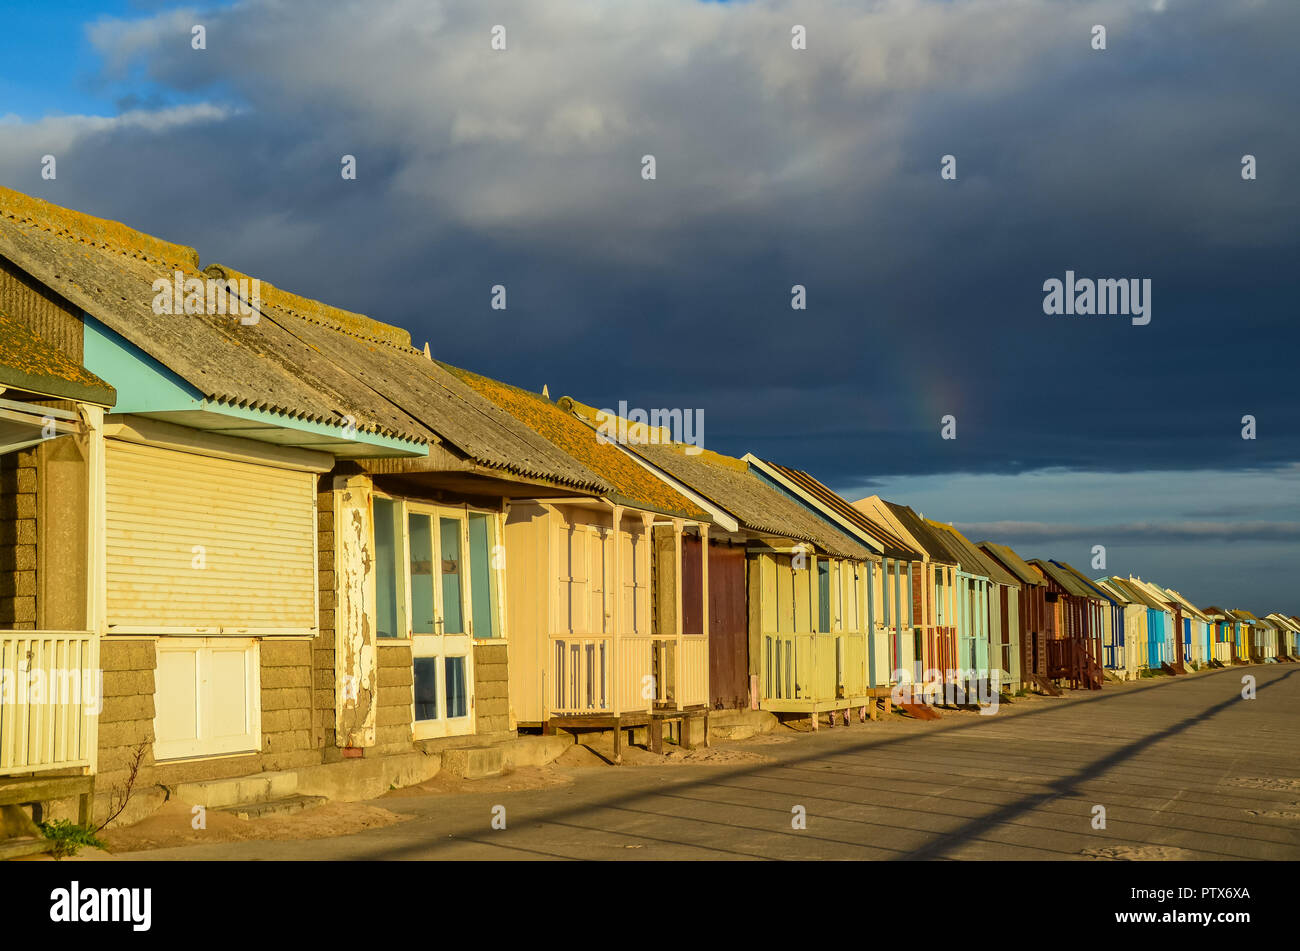 Beach Huits at Sutton on Sea - Stock Image